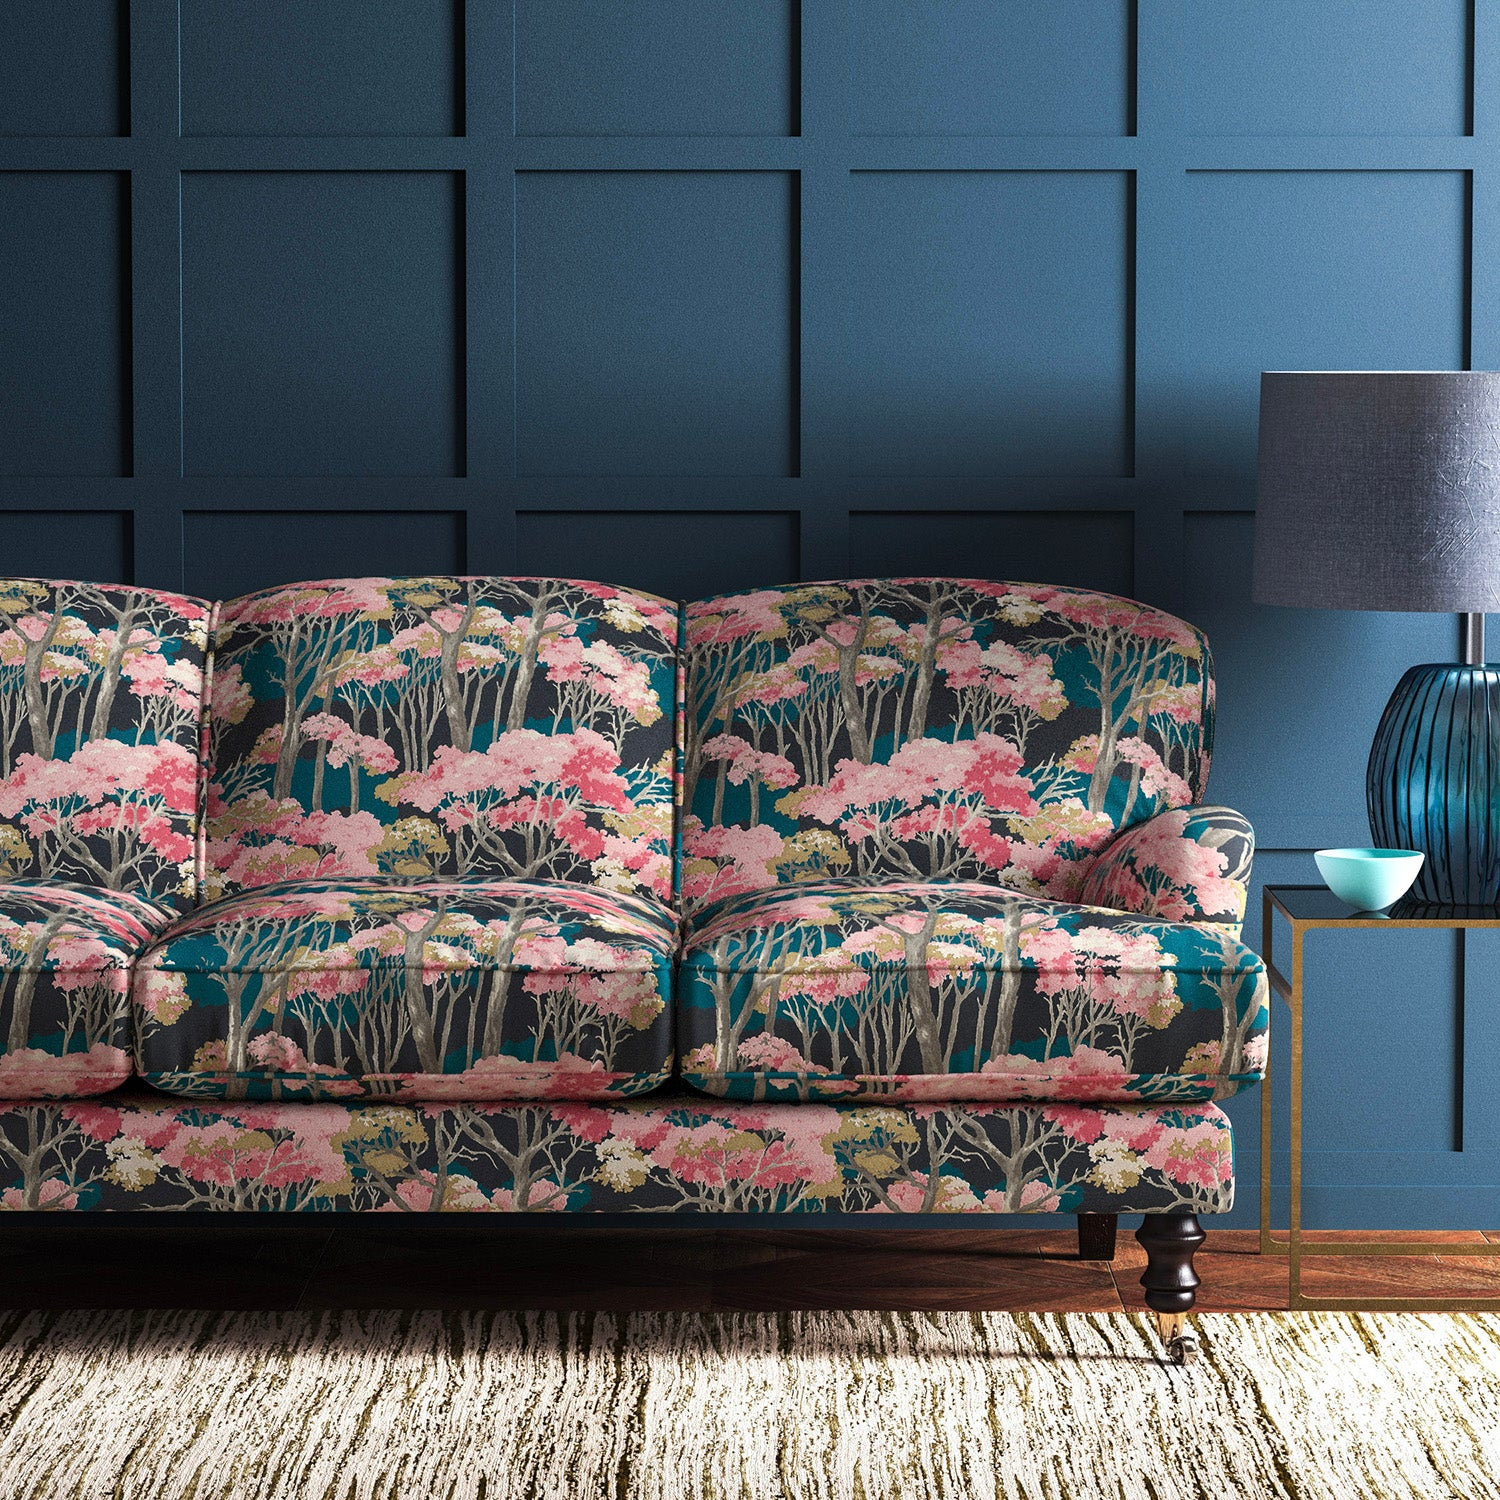 Velvet sofa in a pink and blue velvet fabric with tree design